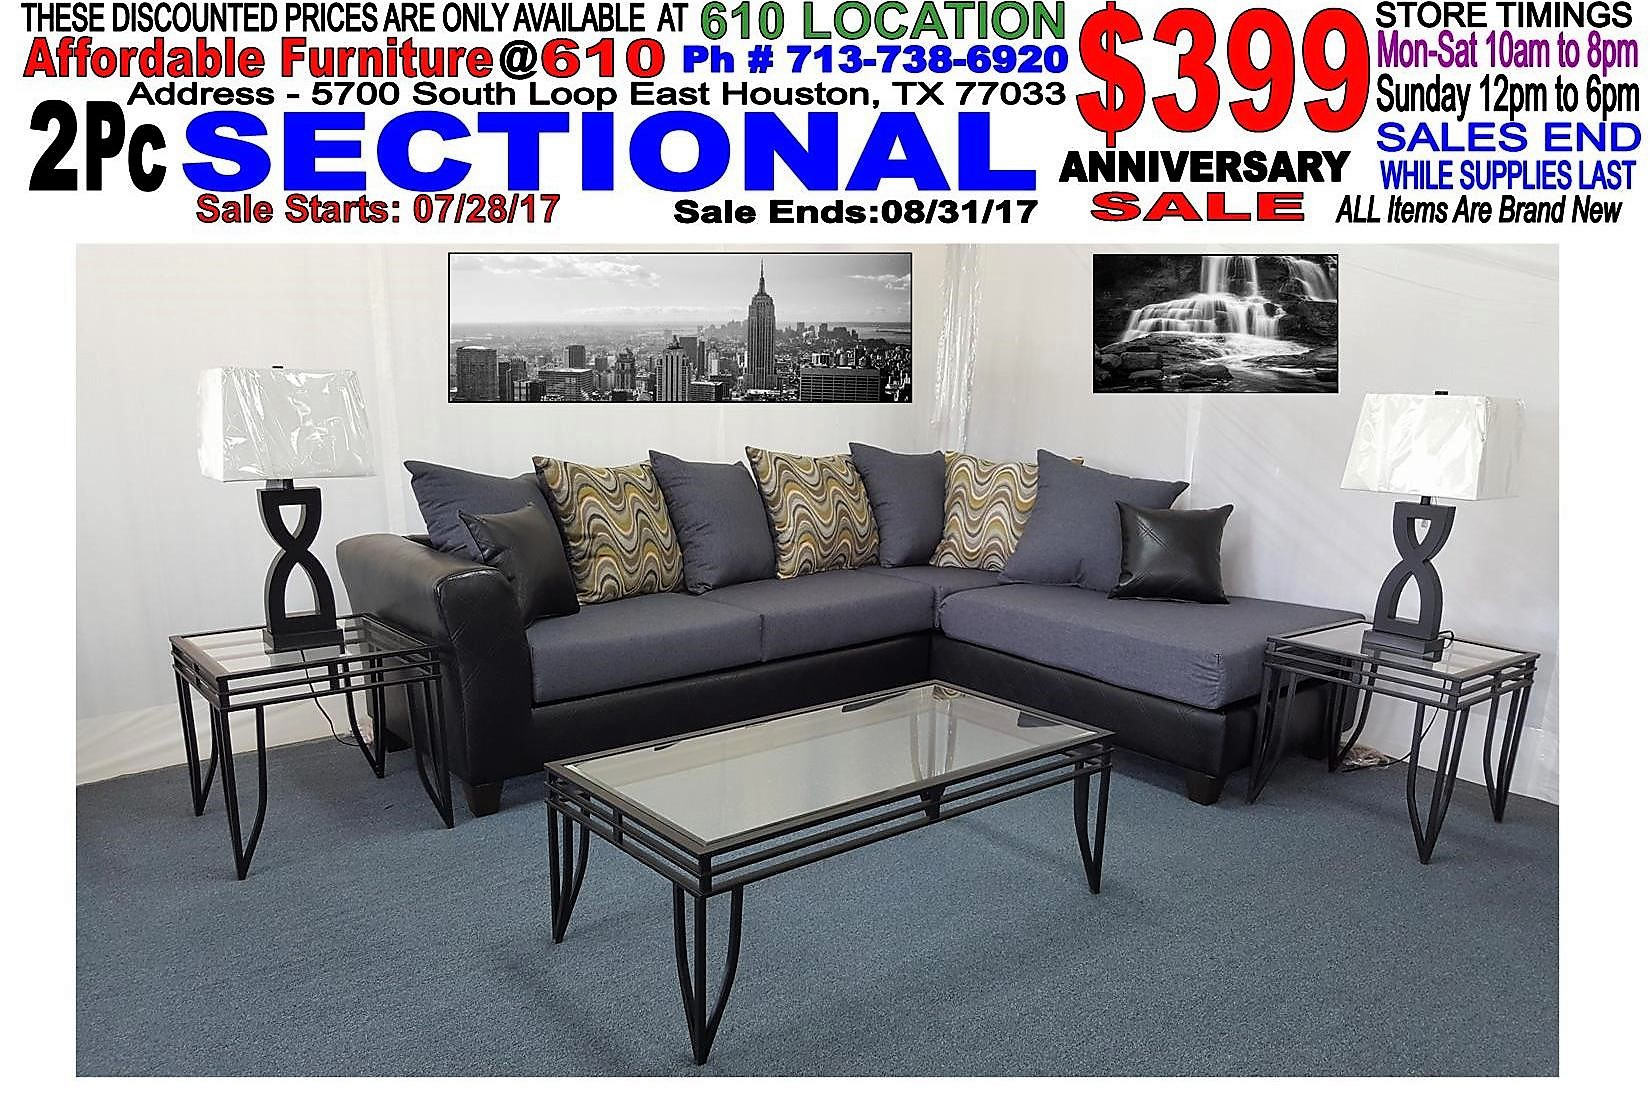 Awesome Online Classified Advertising For Used Furniture Sale House Evergreenethics Interior Chair Design Evergreenethicsorg